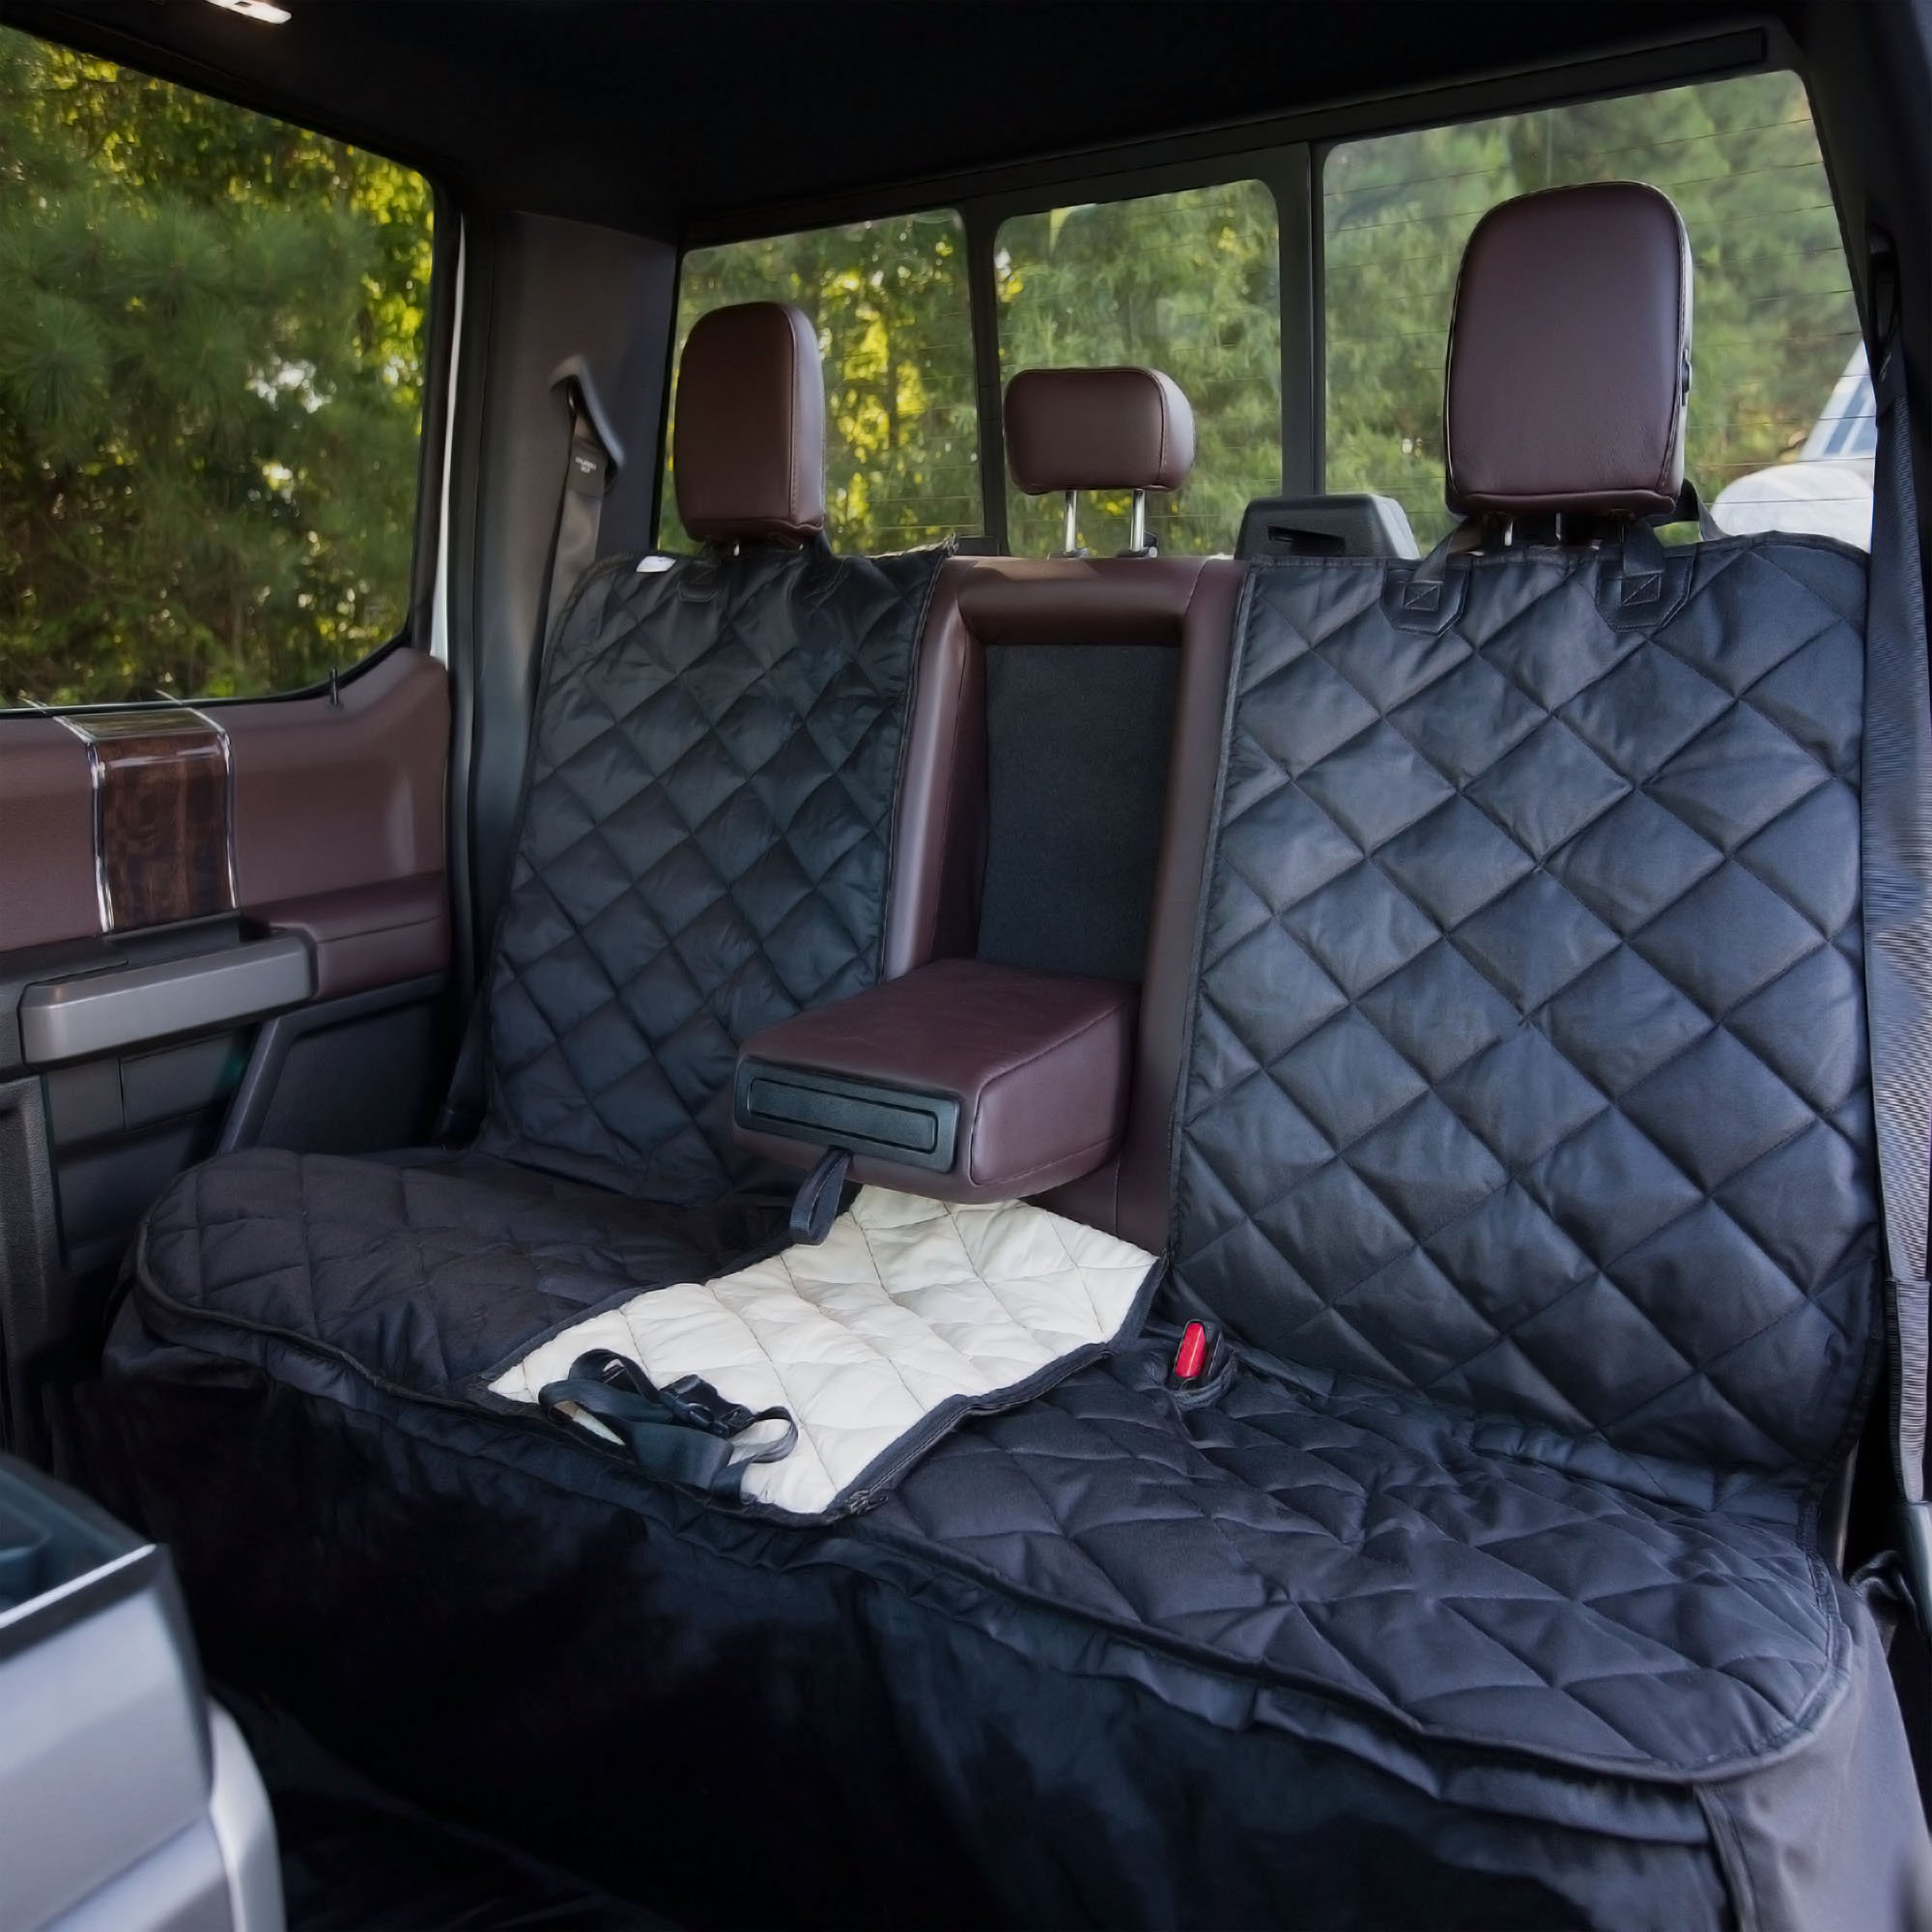 Plush Paws Custom Dog Seat Cover Center Console Access, Removable Hammock - Black, Waterproof & NonSlip Silicone Backing for Cars, Trucks & Suv's